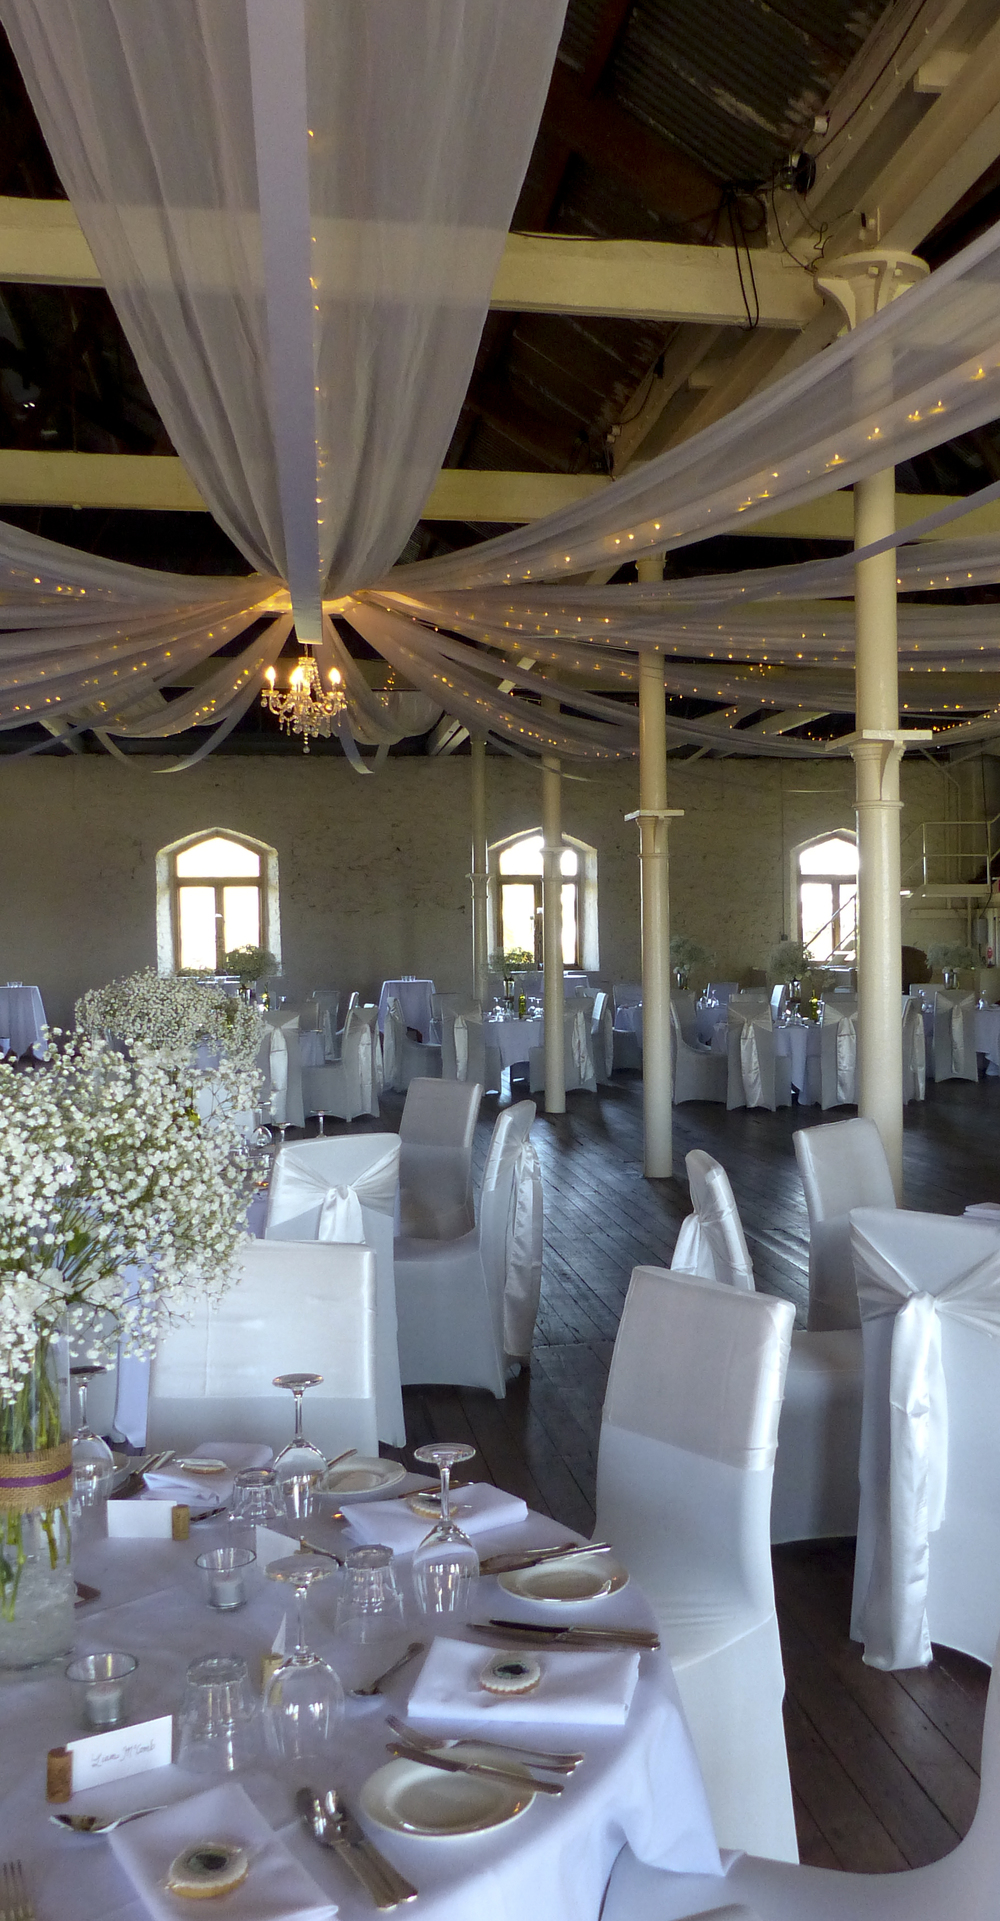 A classic 16 arm ceiling canopy with white ribbons and chandelier.